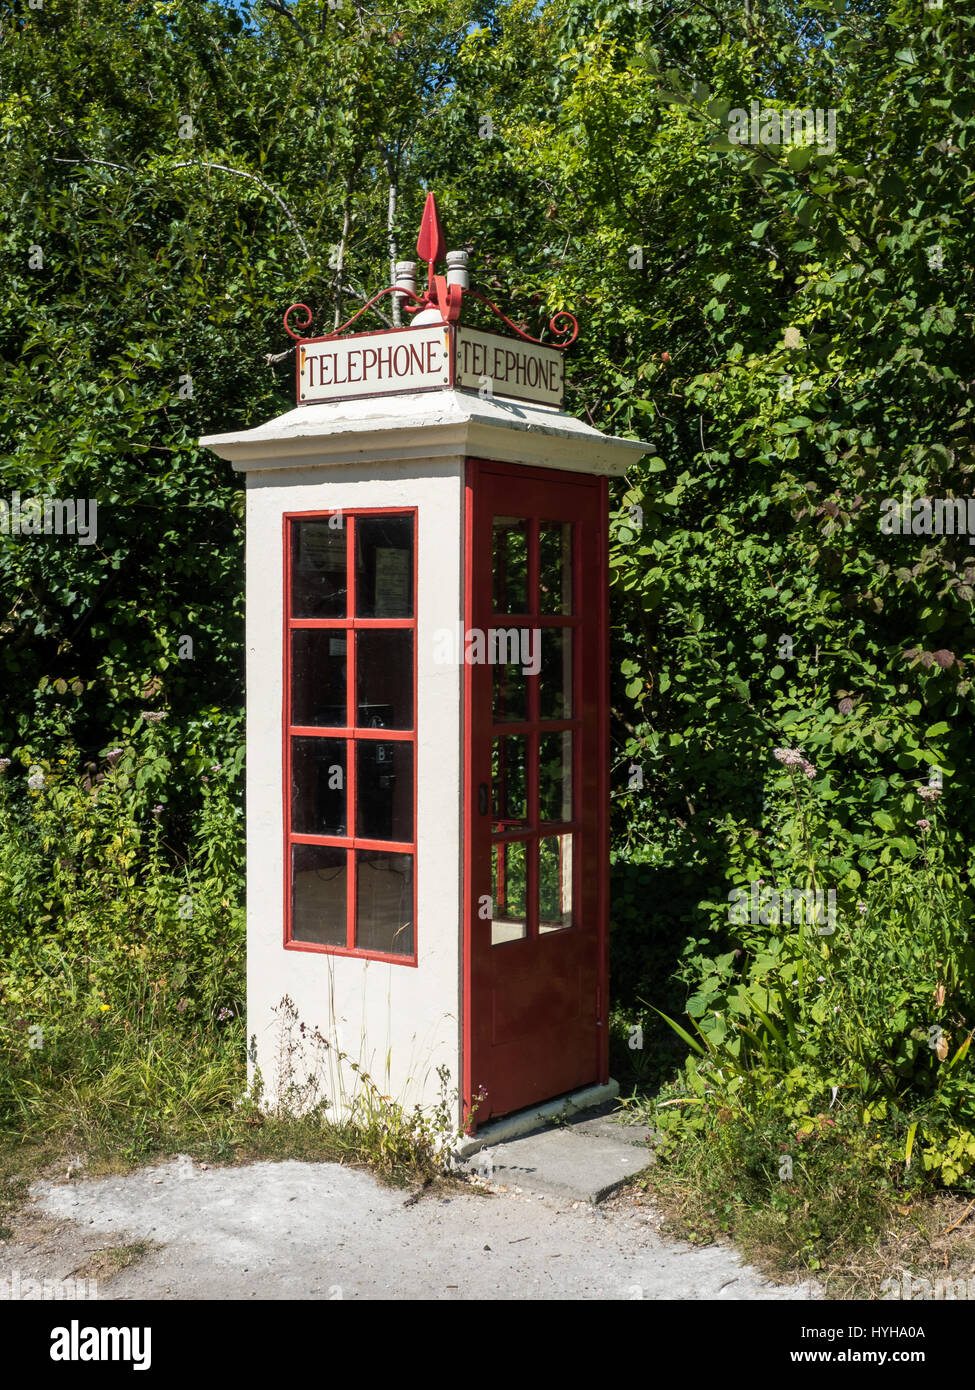 Vintage Telephone kiosk, K1, at the Amberley Working museum, West Sussex, UK - Stock Image